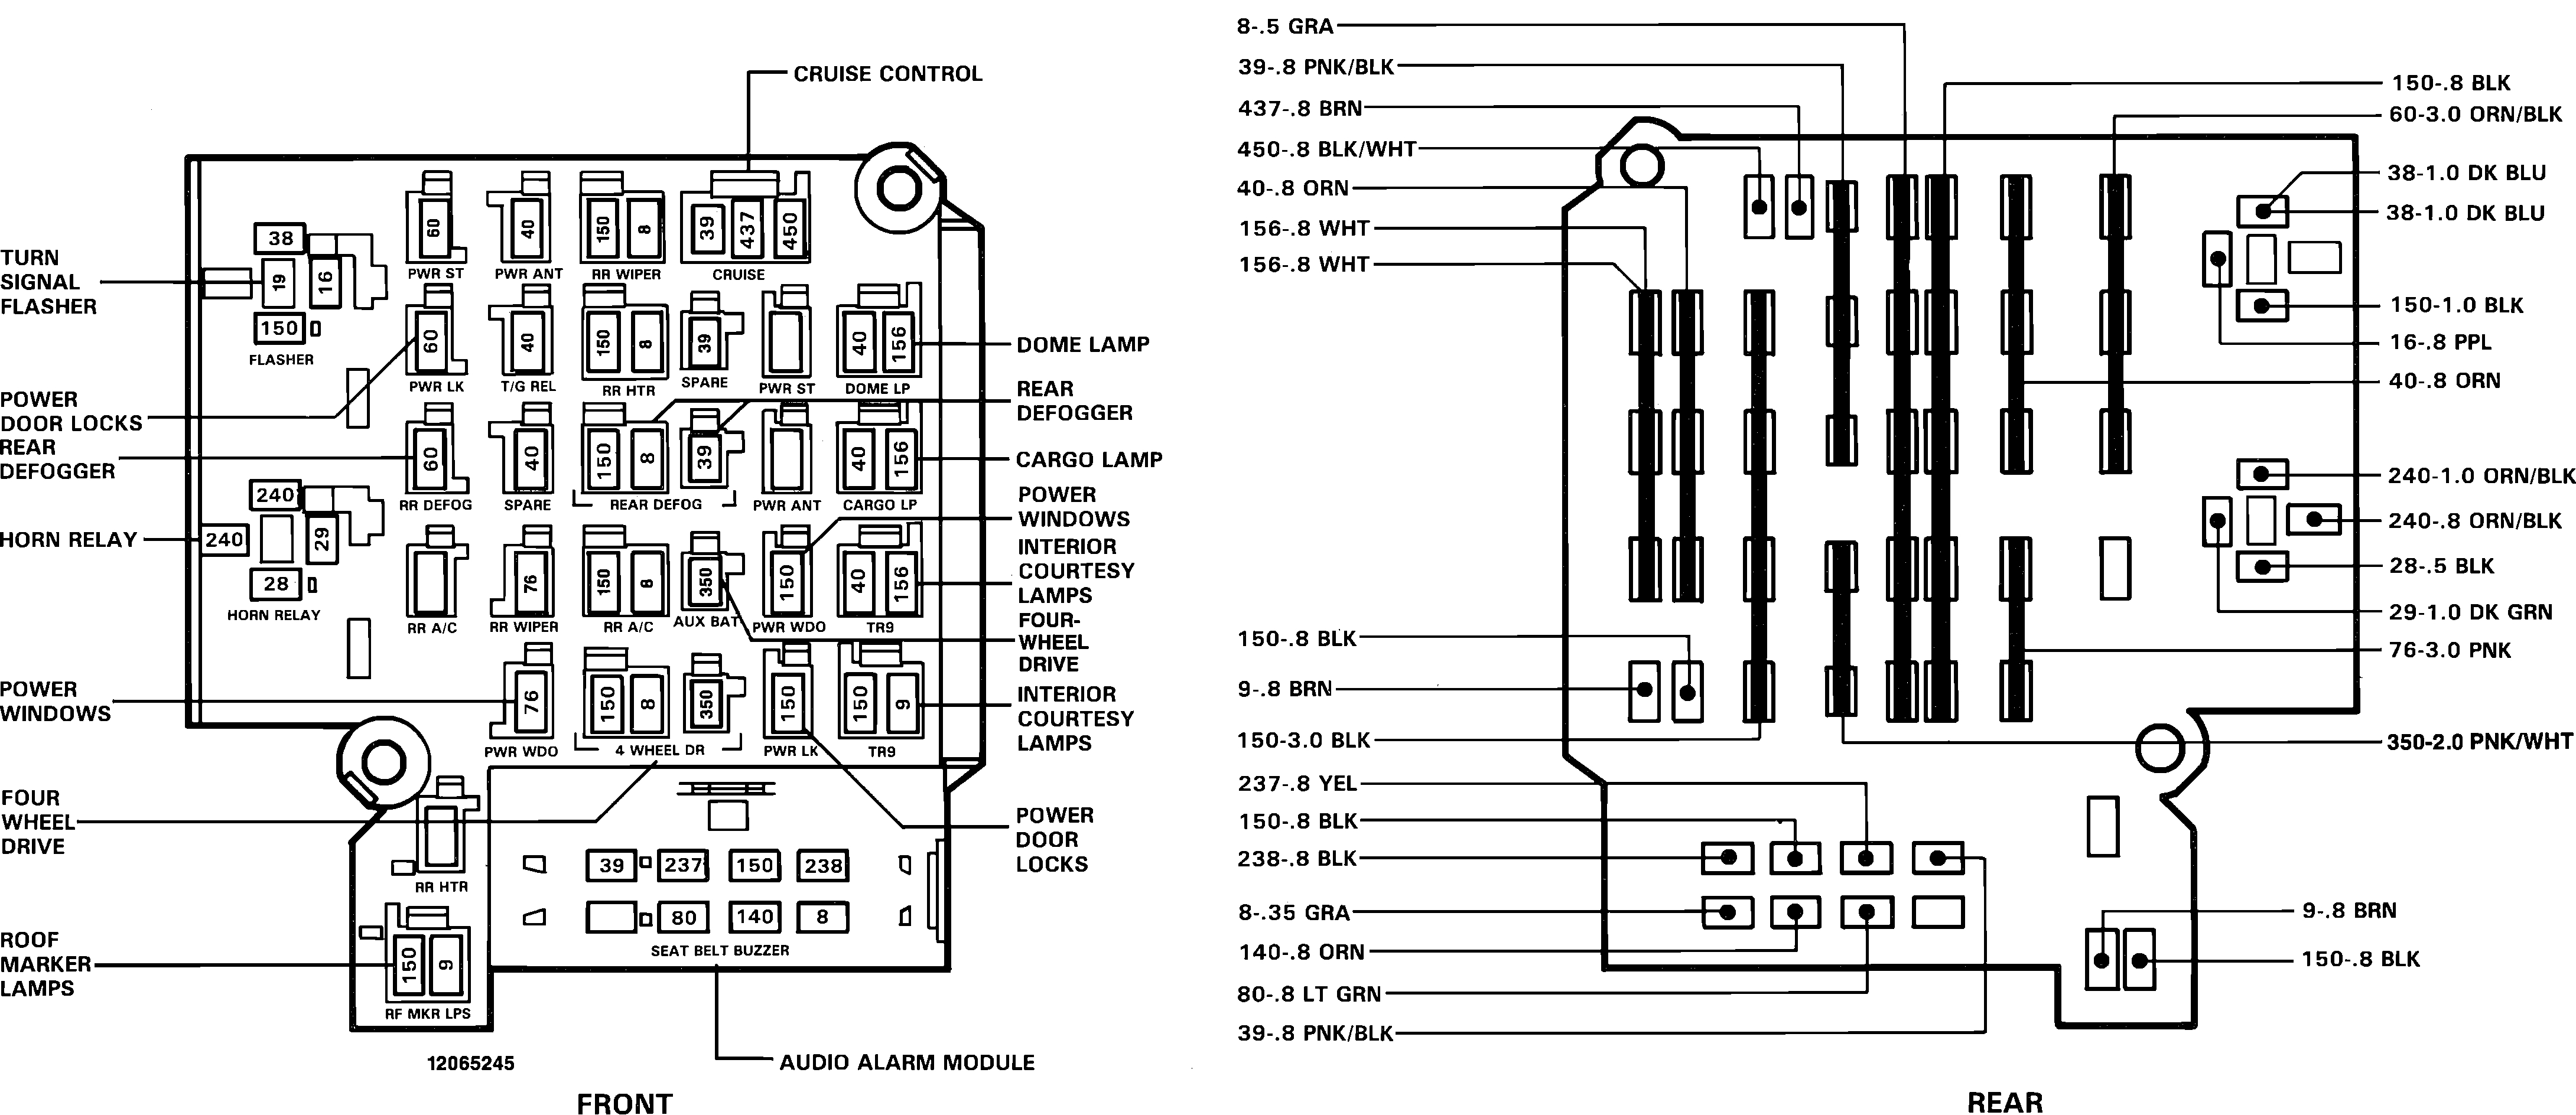 Relay And Switches Diagram Needed  Does Anyone Have A List Or